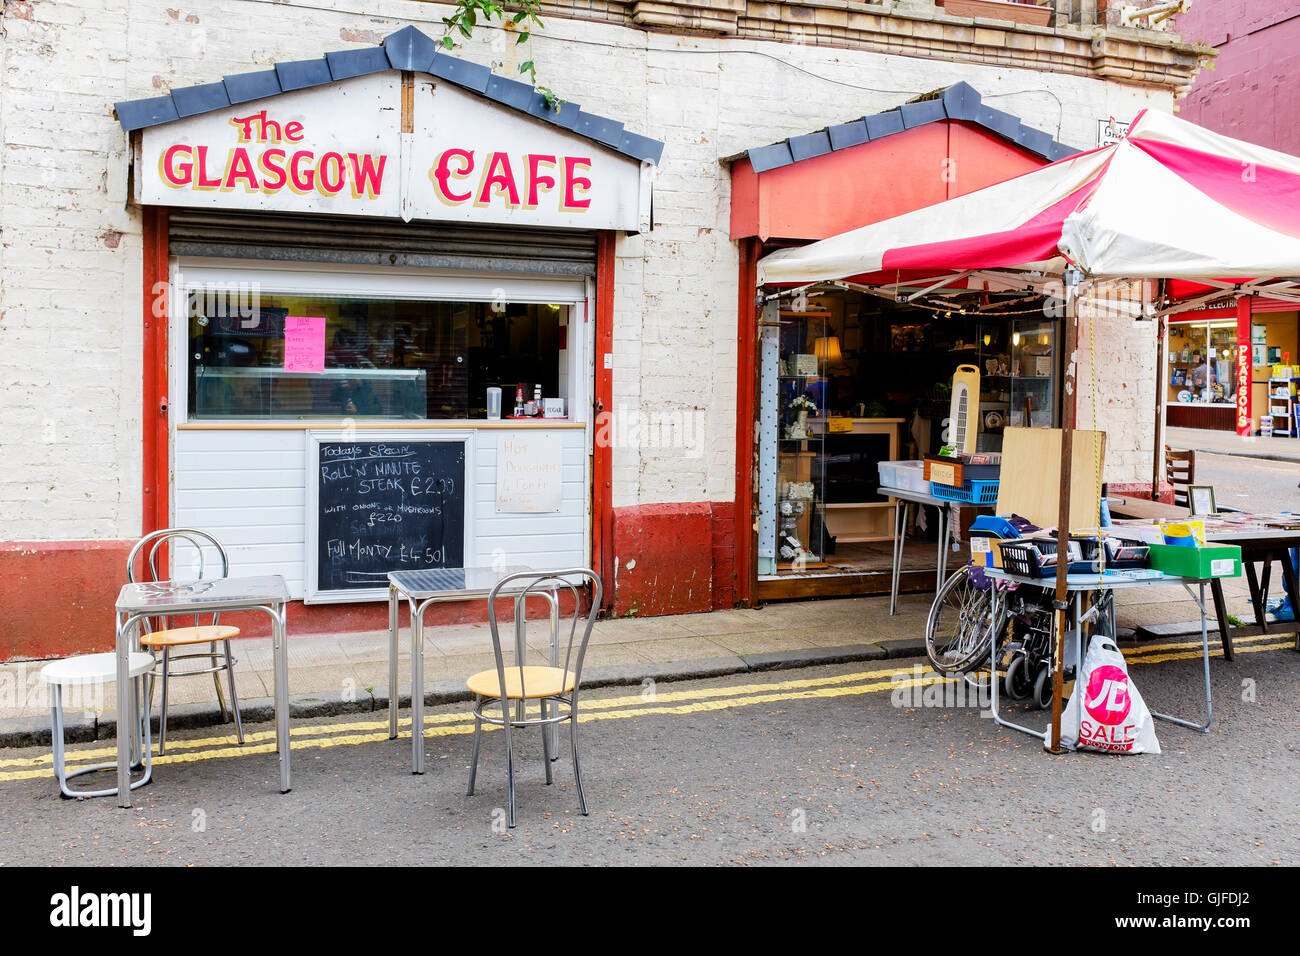 Small cafe and side shop selling secondhand goods, The Barras flea market, Glasgow, Scotland, UK Stock Photo